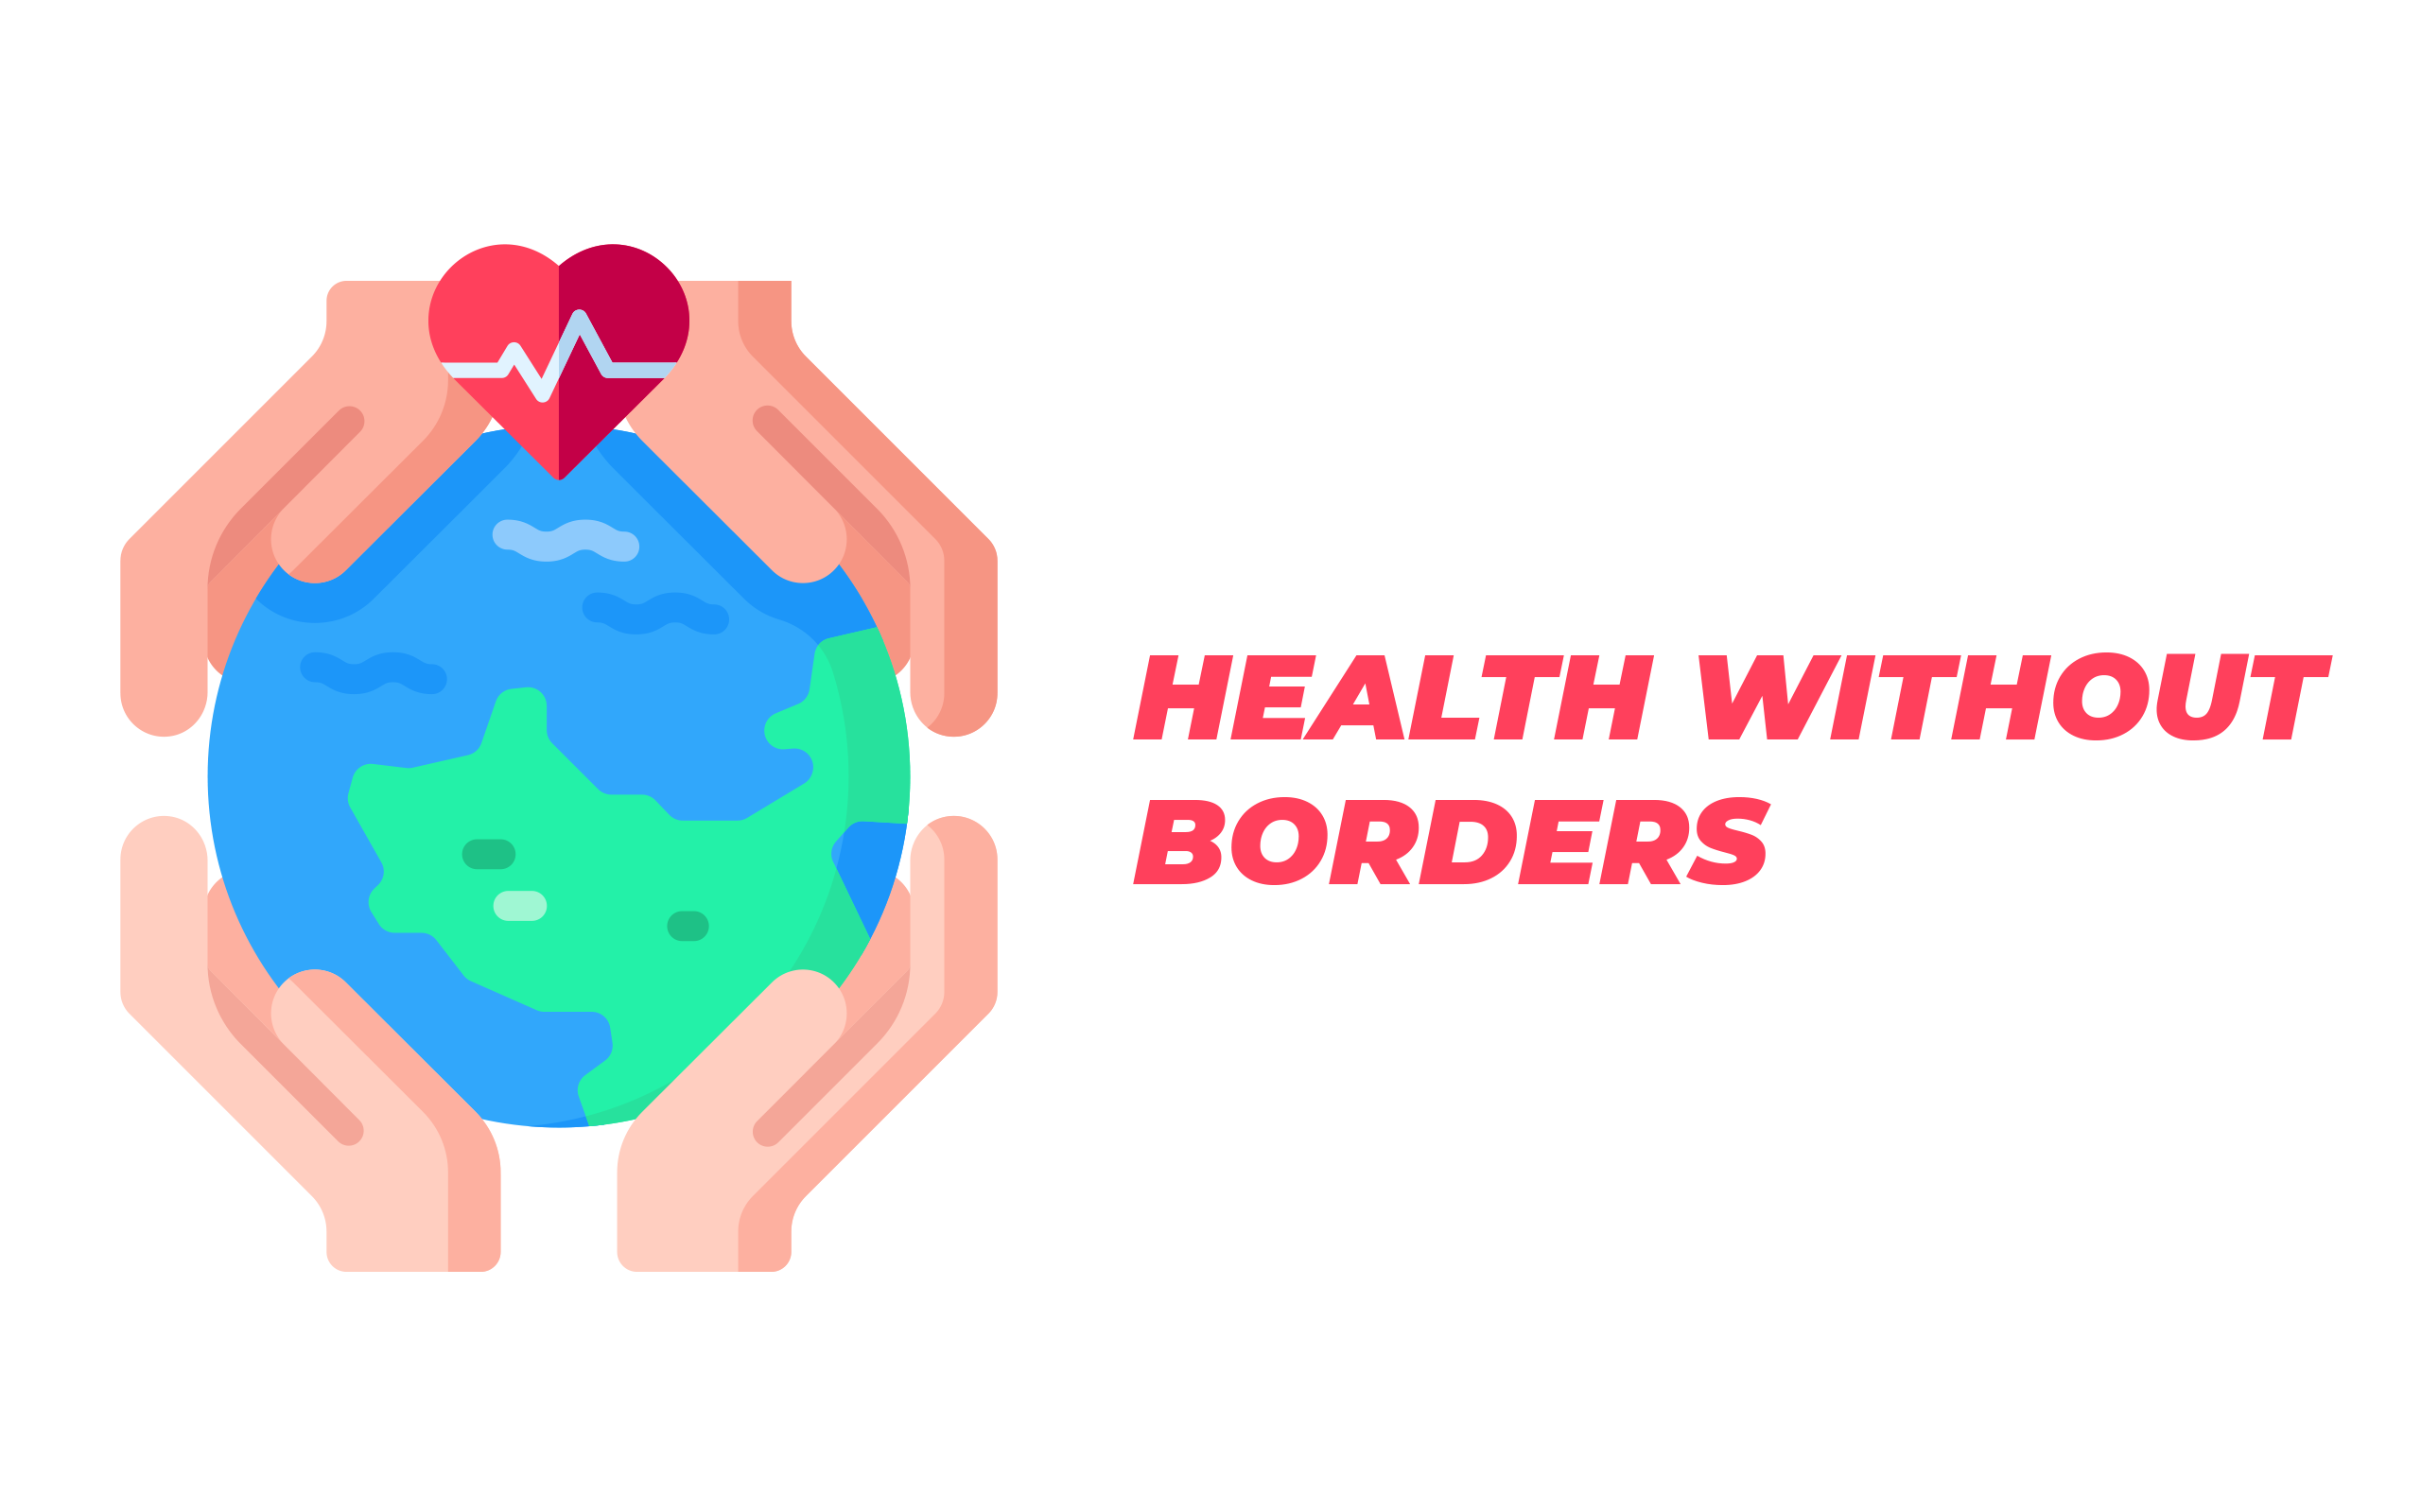 Health With Out Borders